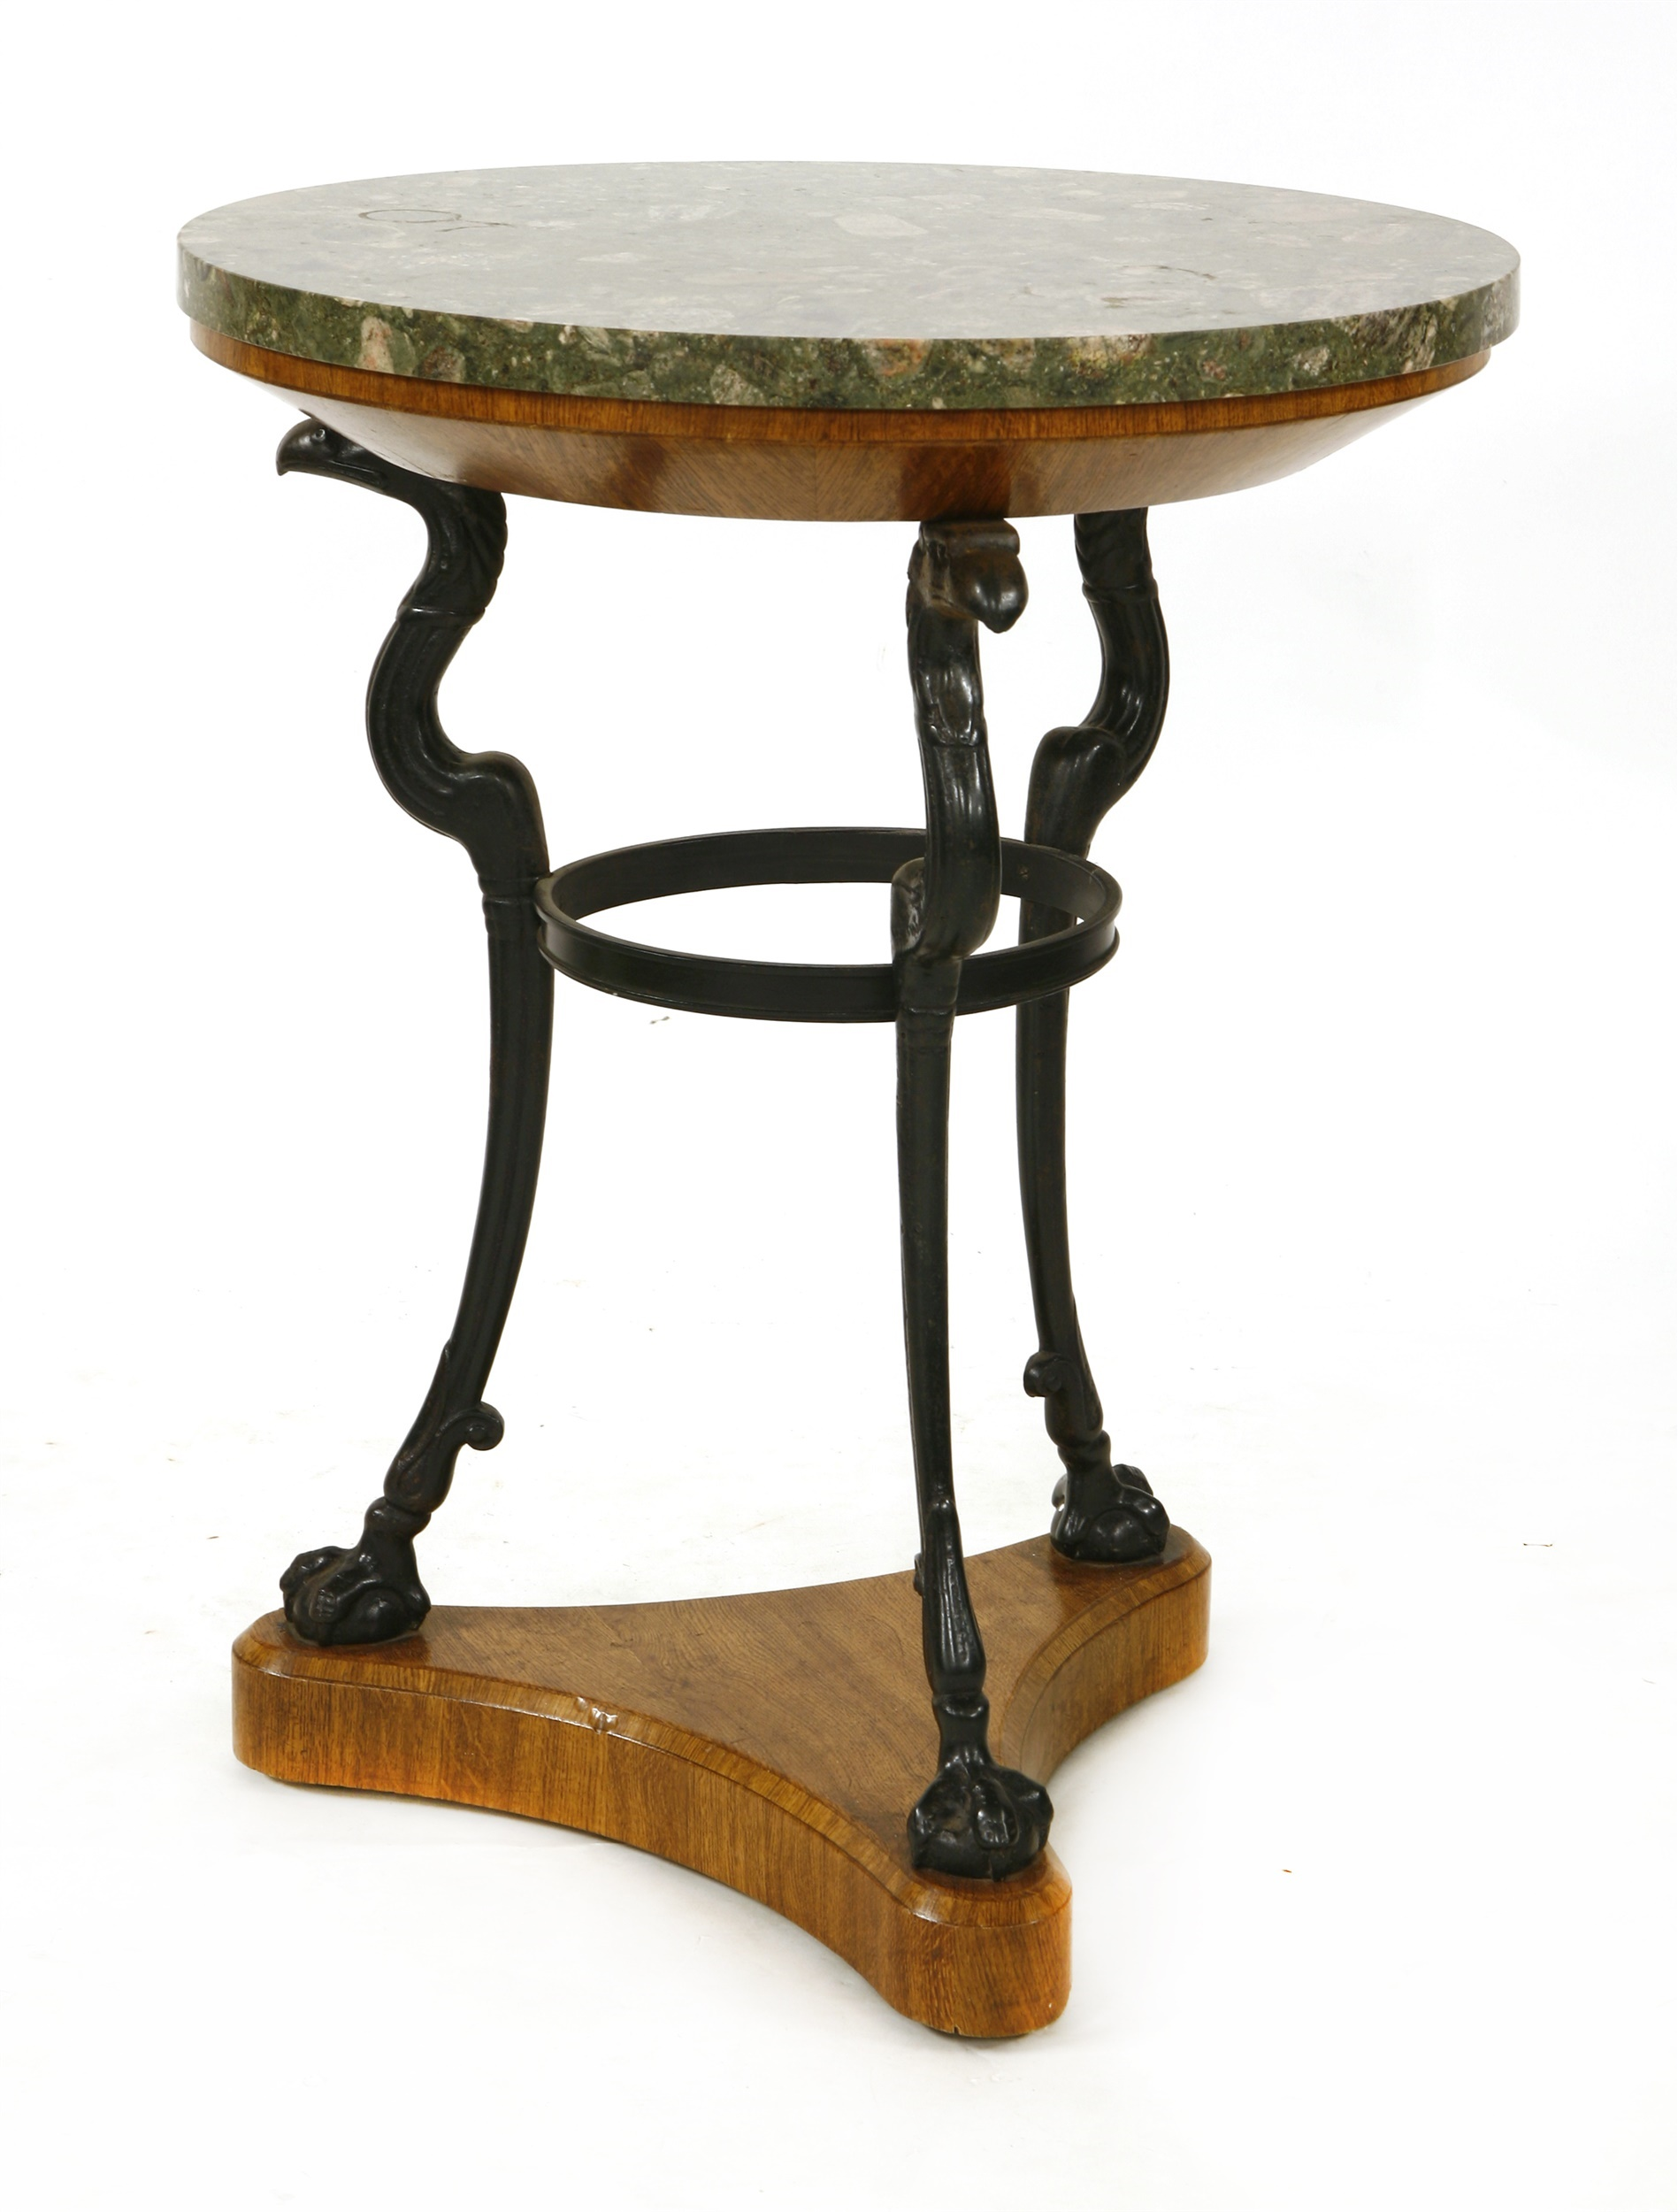 A Regency oak, iron and marble-topped guéridon